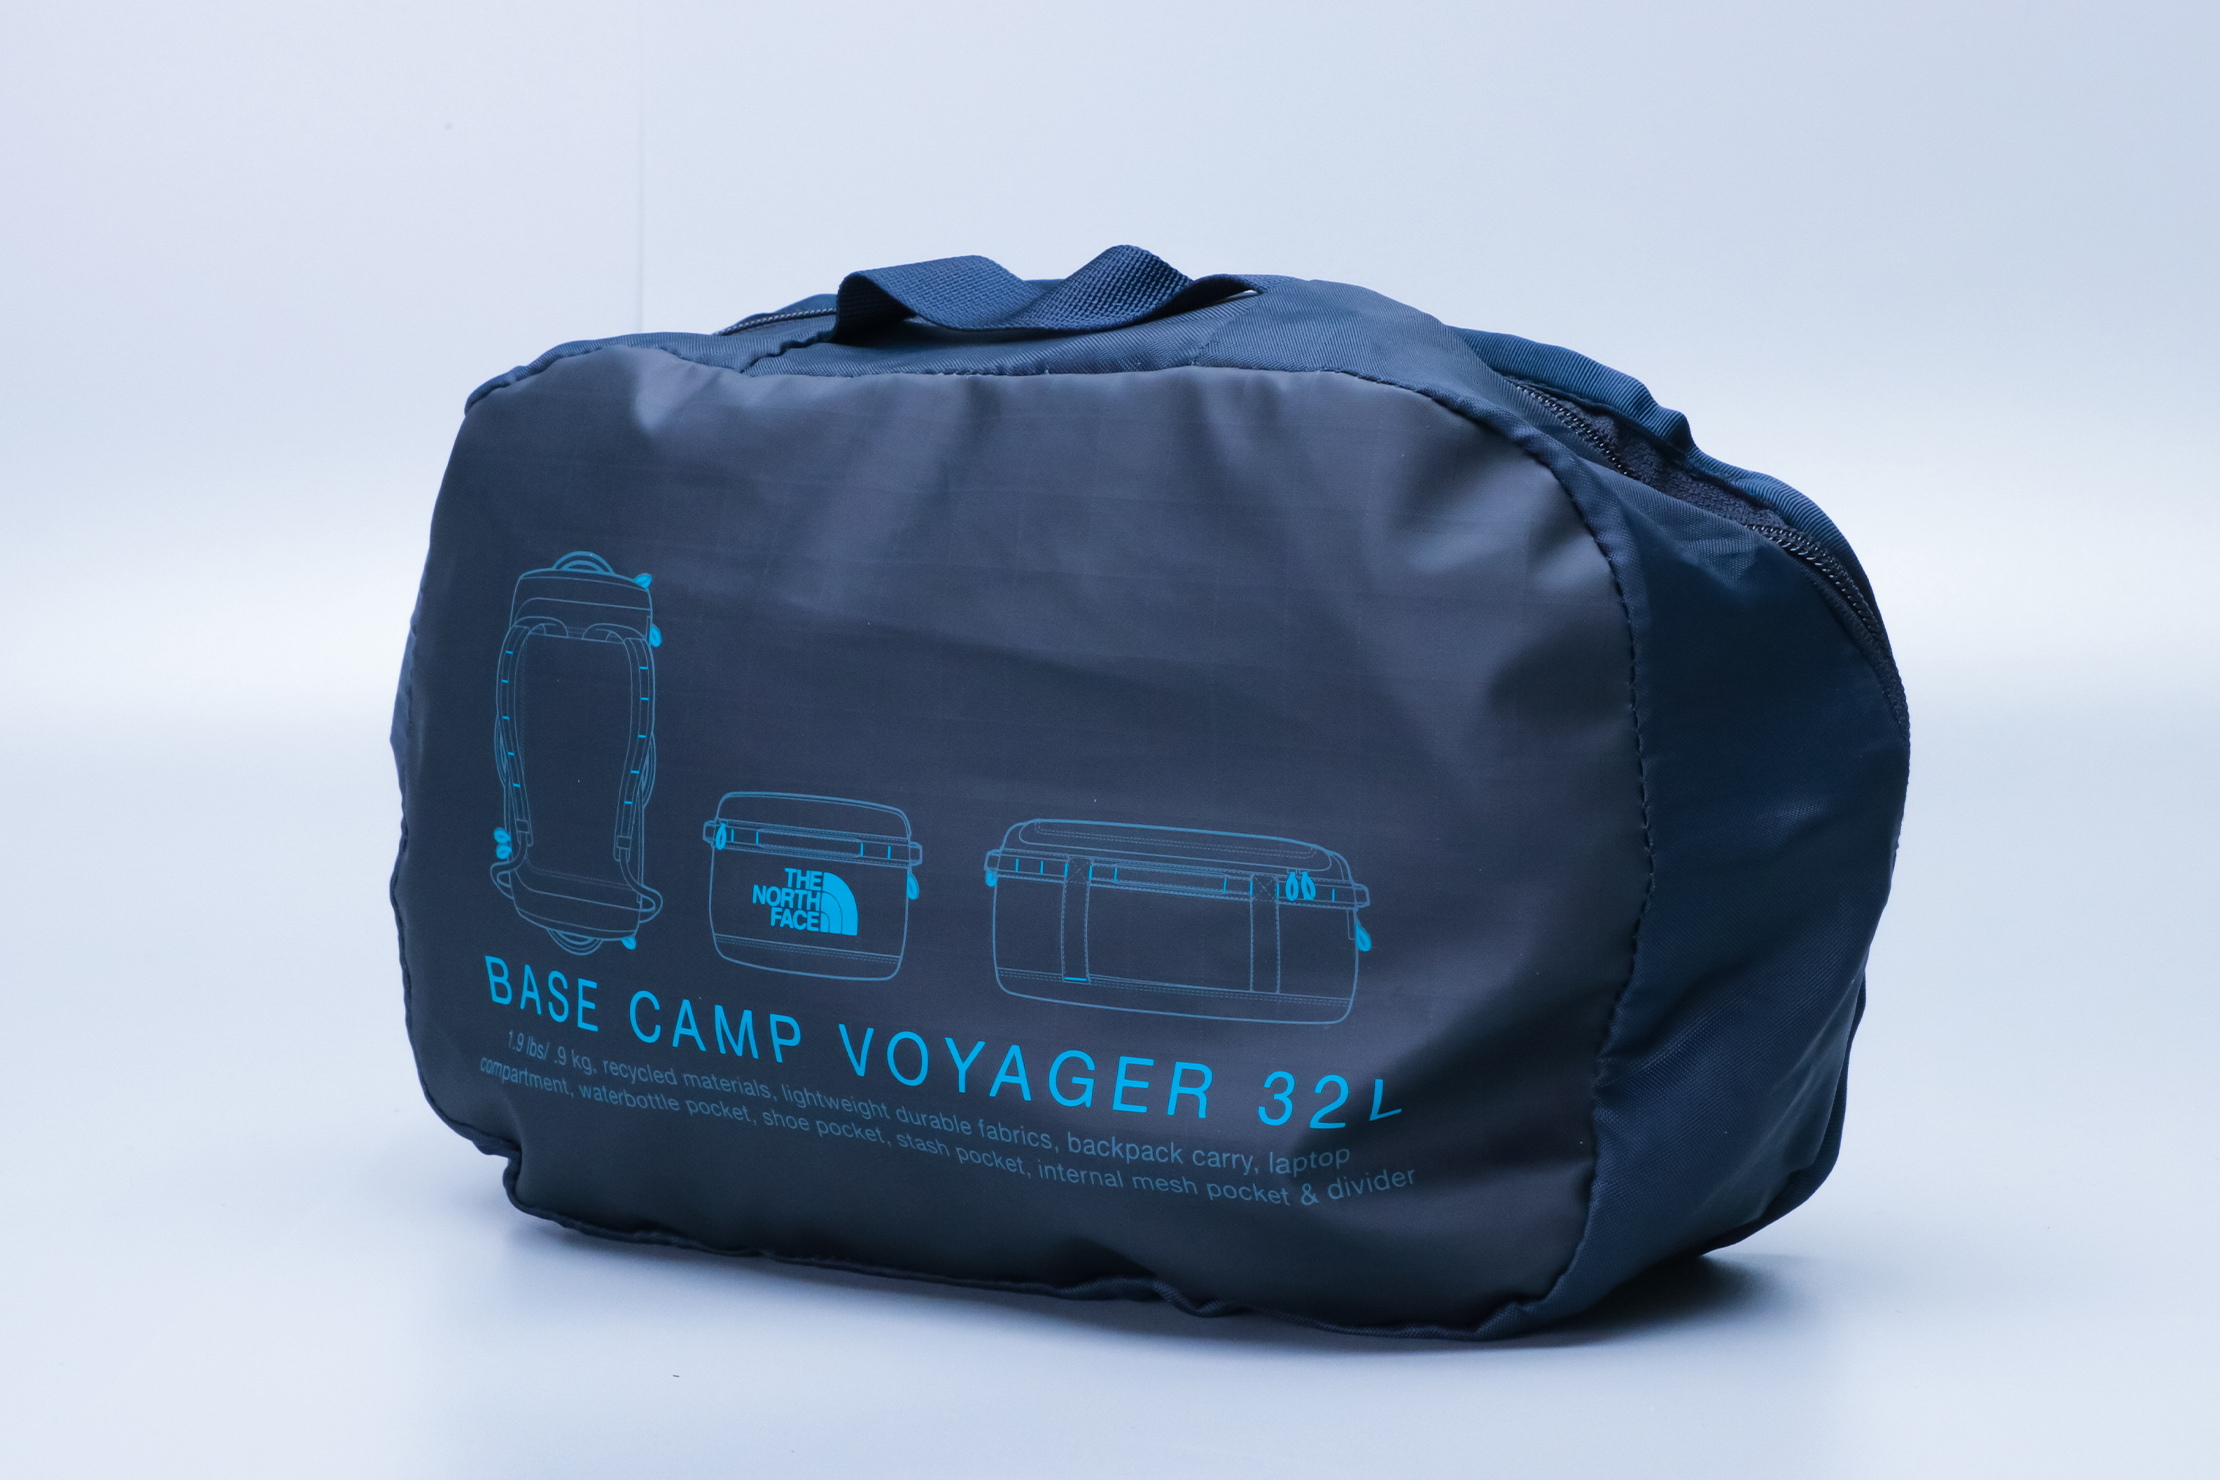 The North Face Base Camp Voyager 32L Compressed